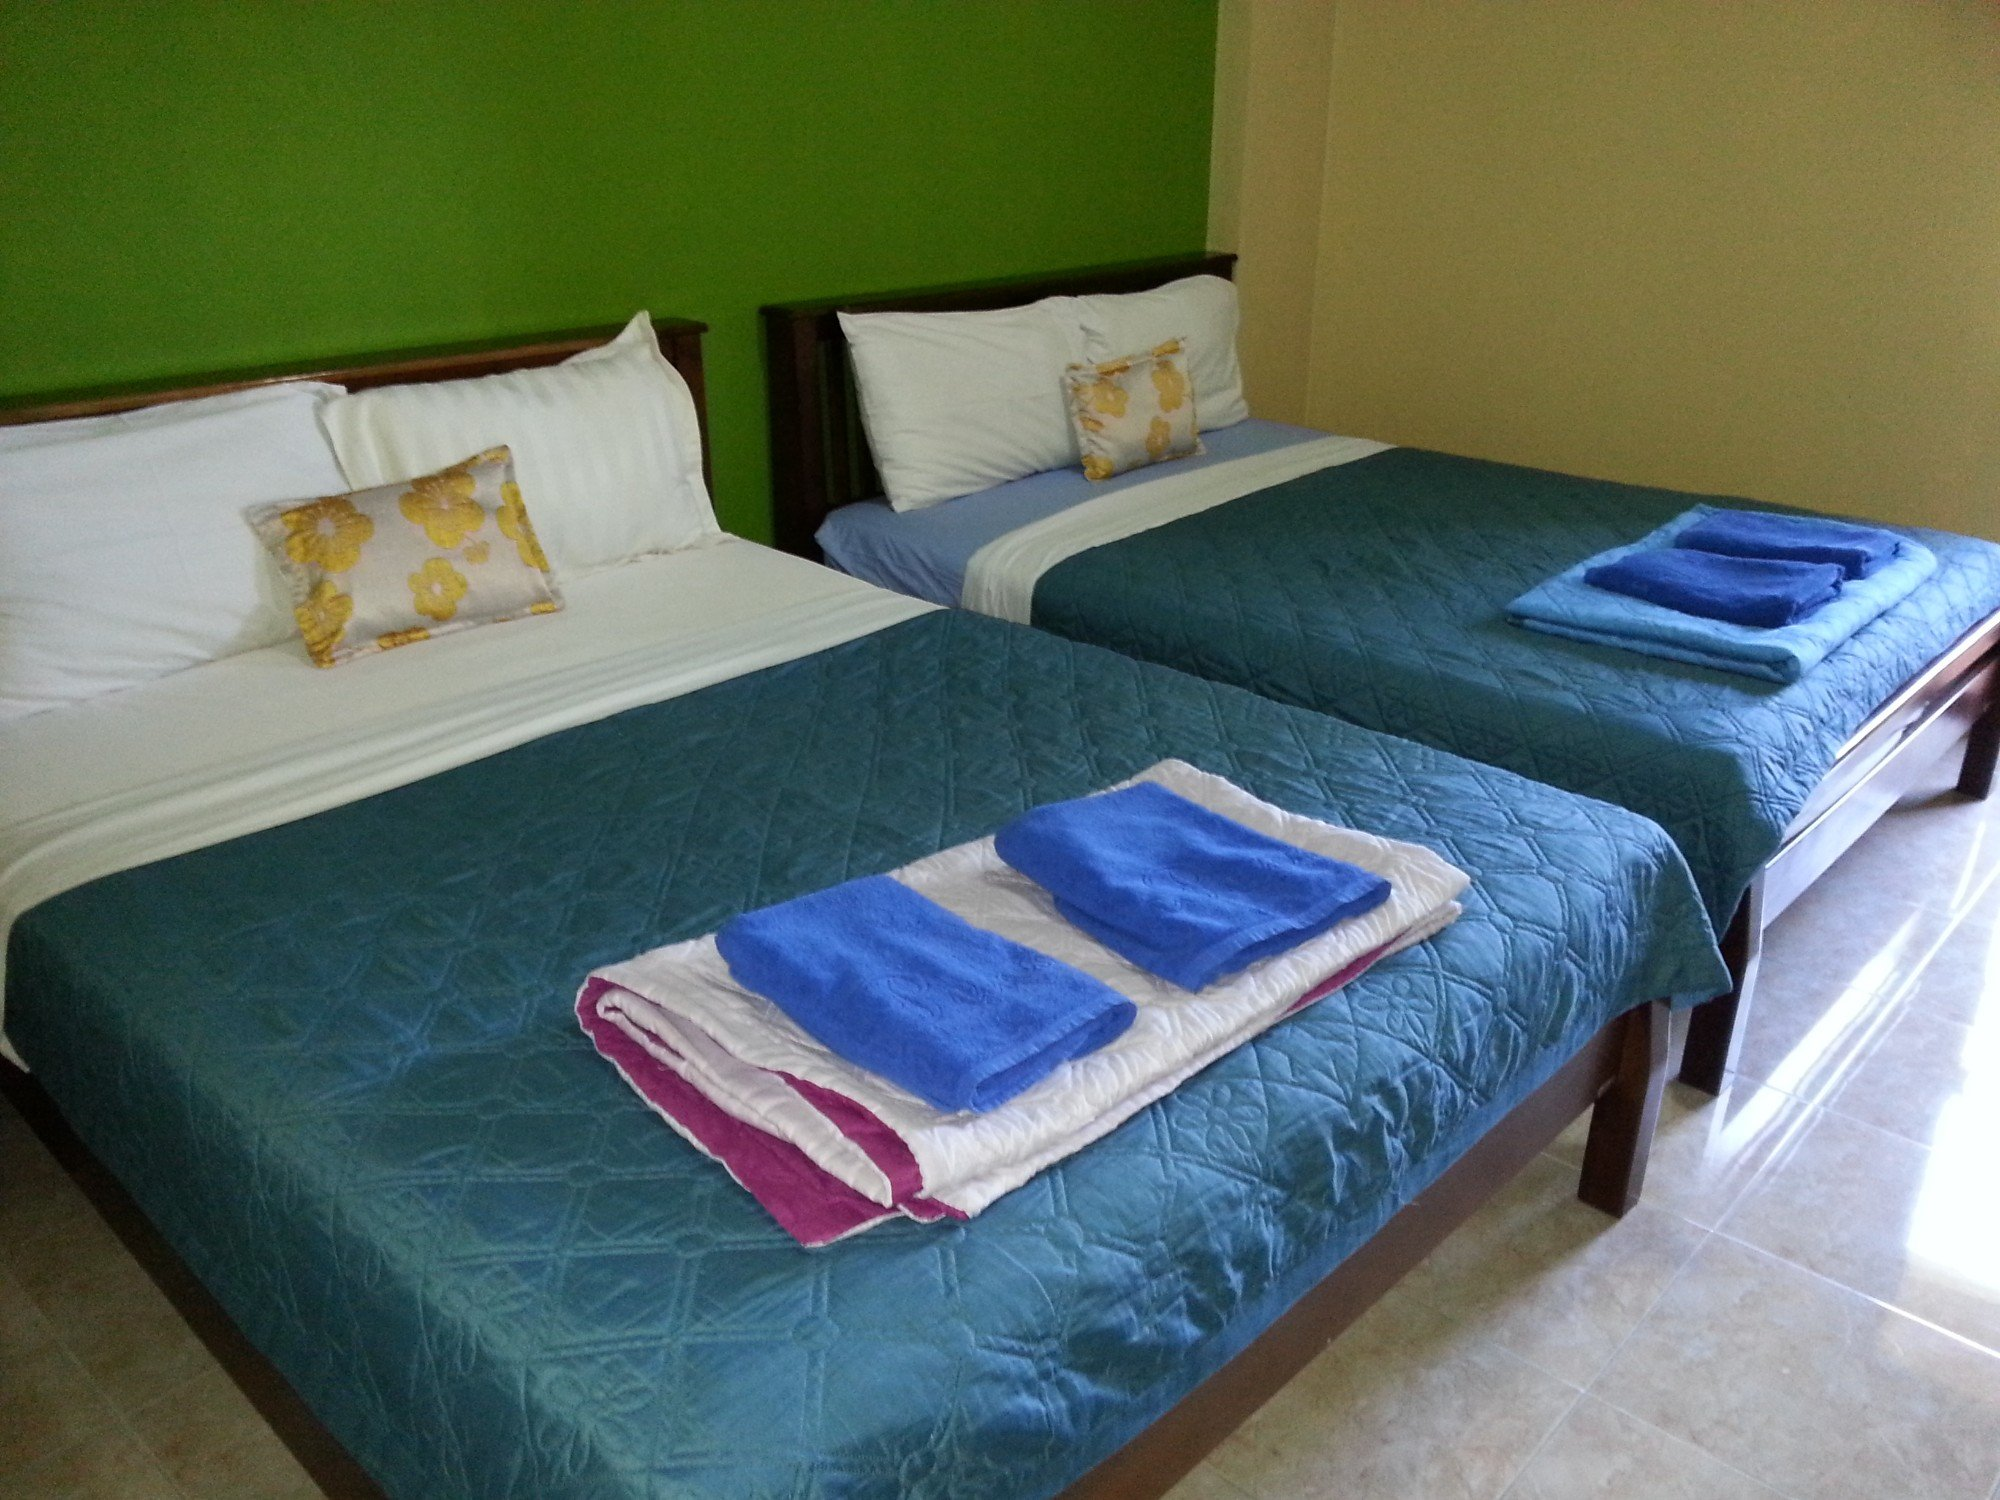 Beds at the Ban Punmanus Guesthouse